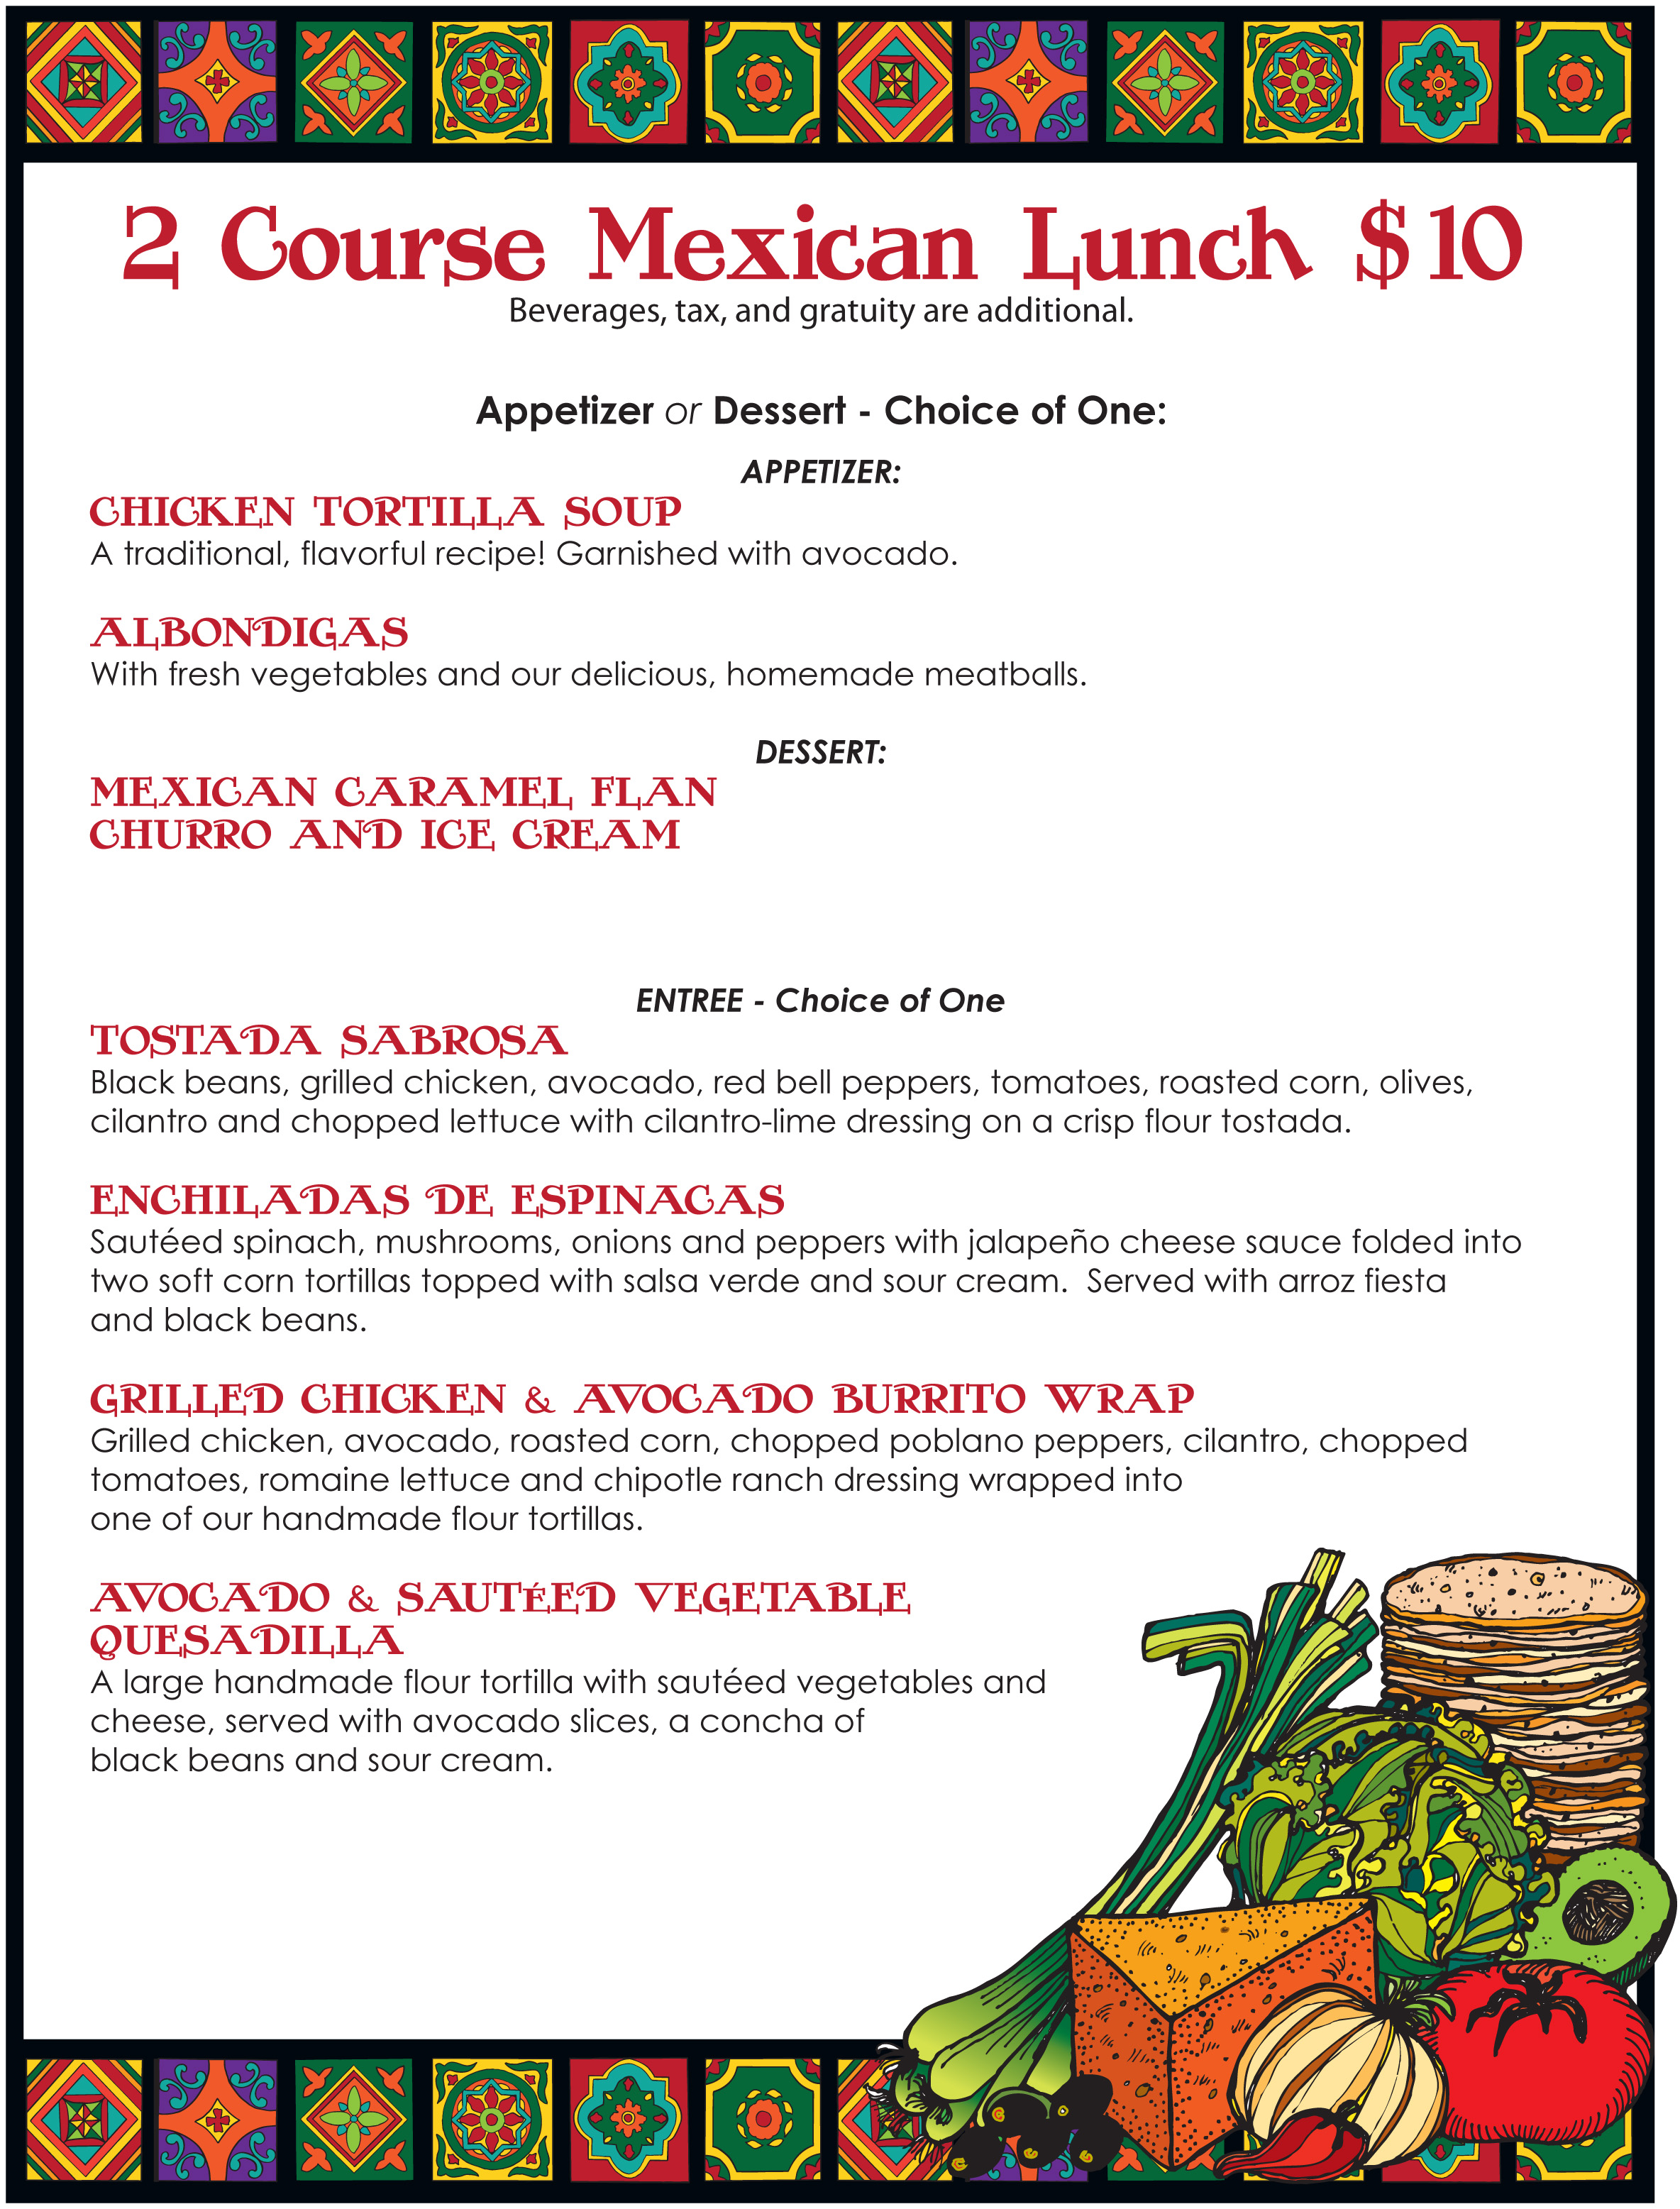 San Diego Restaurant Week Lunch Menu, Sept. 2014